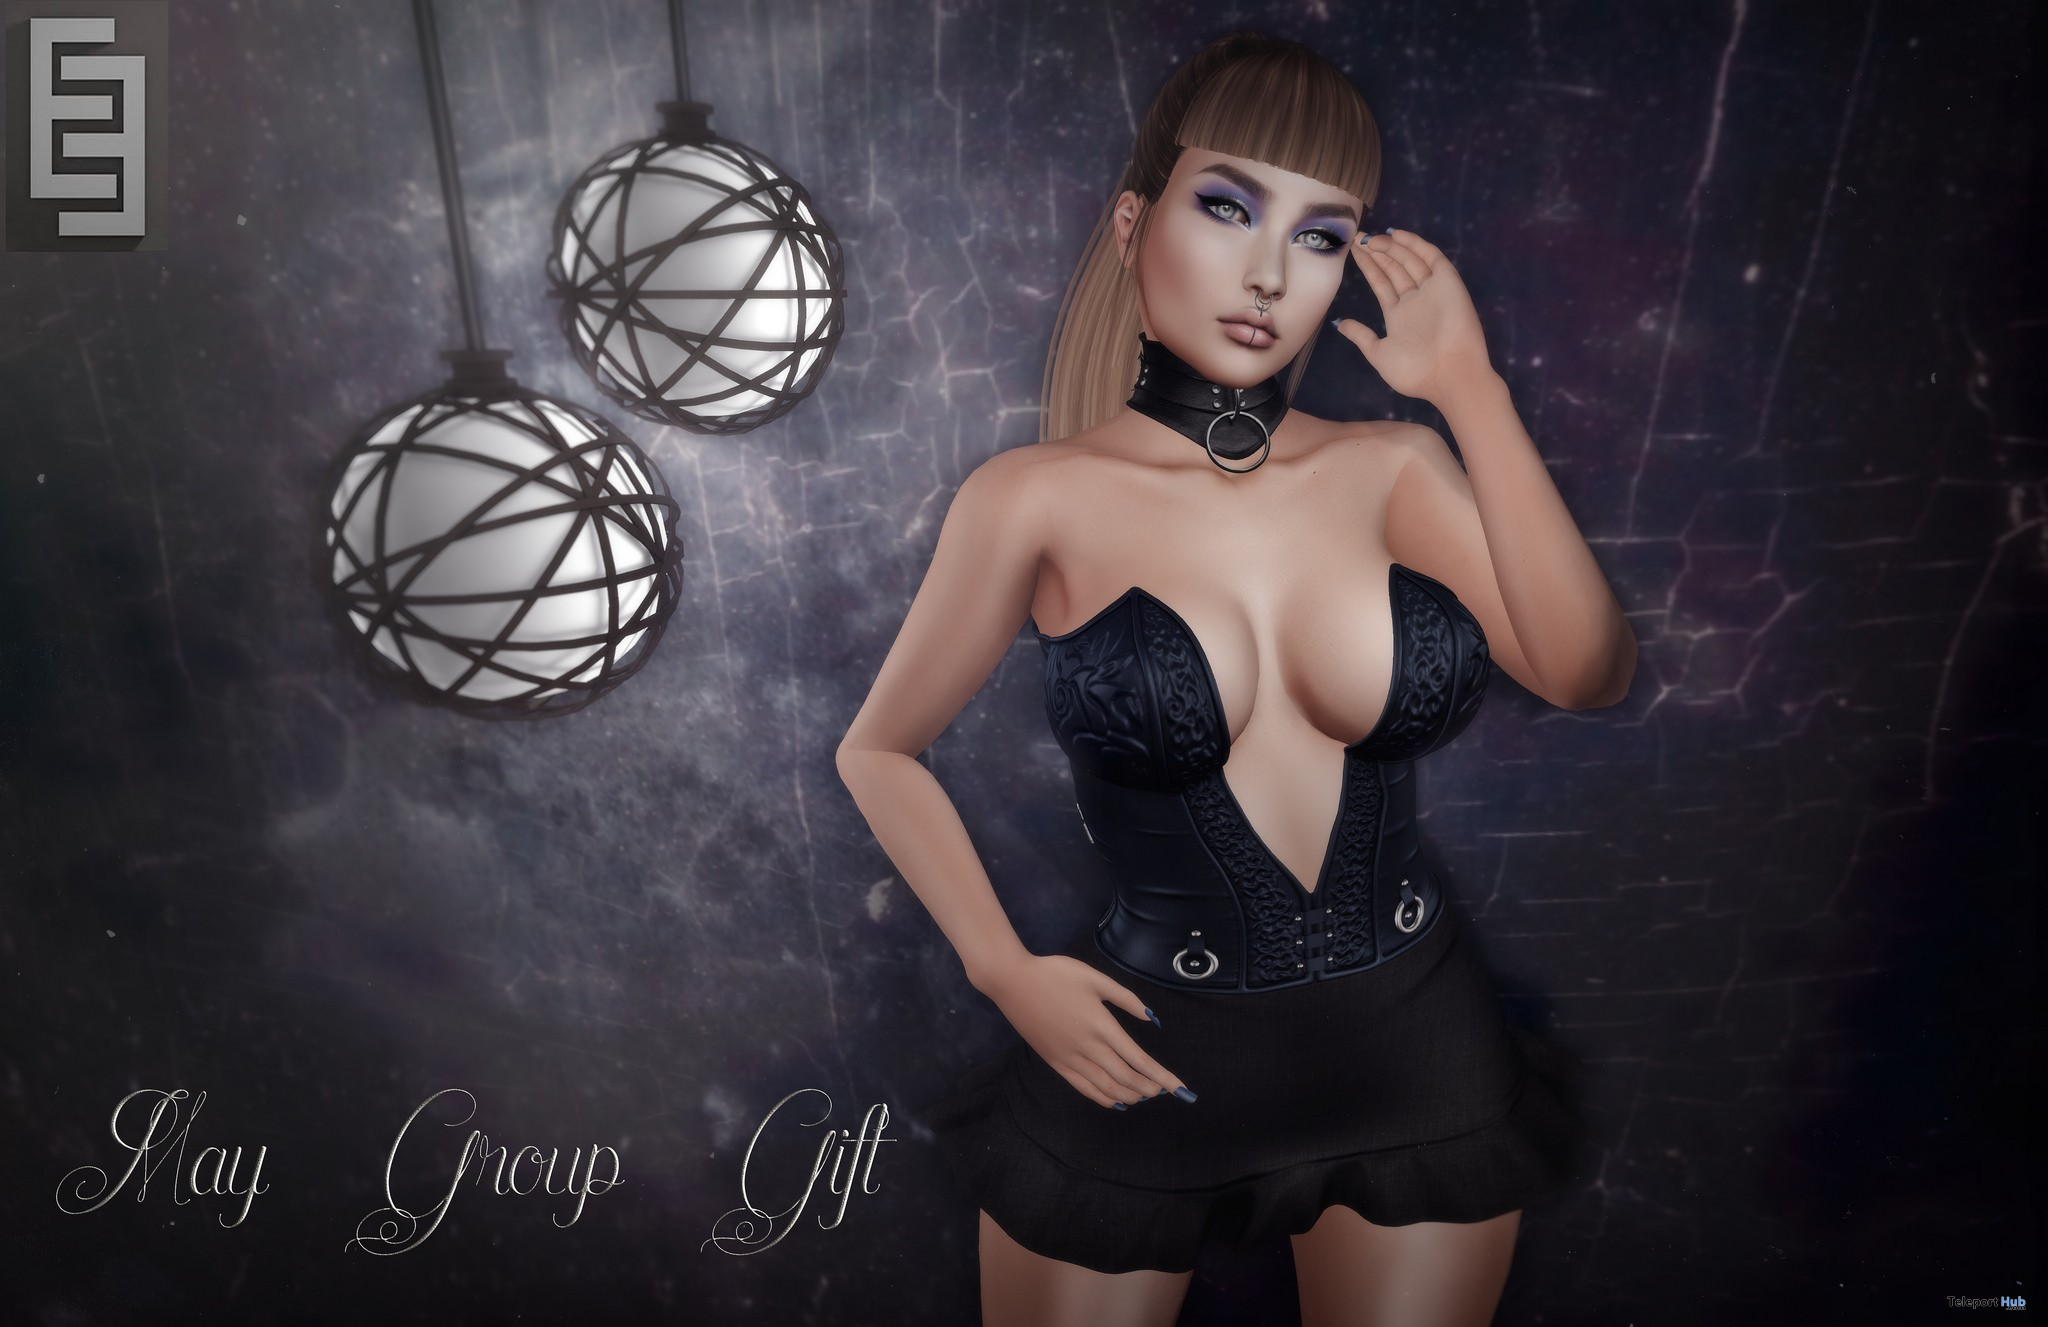 Skirt With Corset May 2017 Group Gift by Elven Elder - Teleport Hub - teleporthub.com